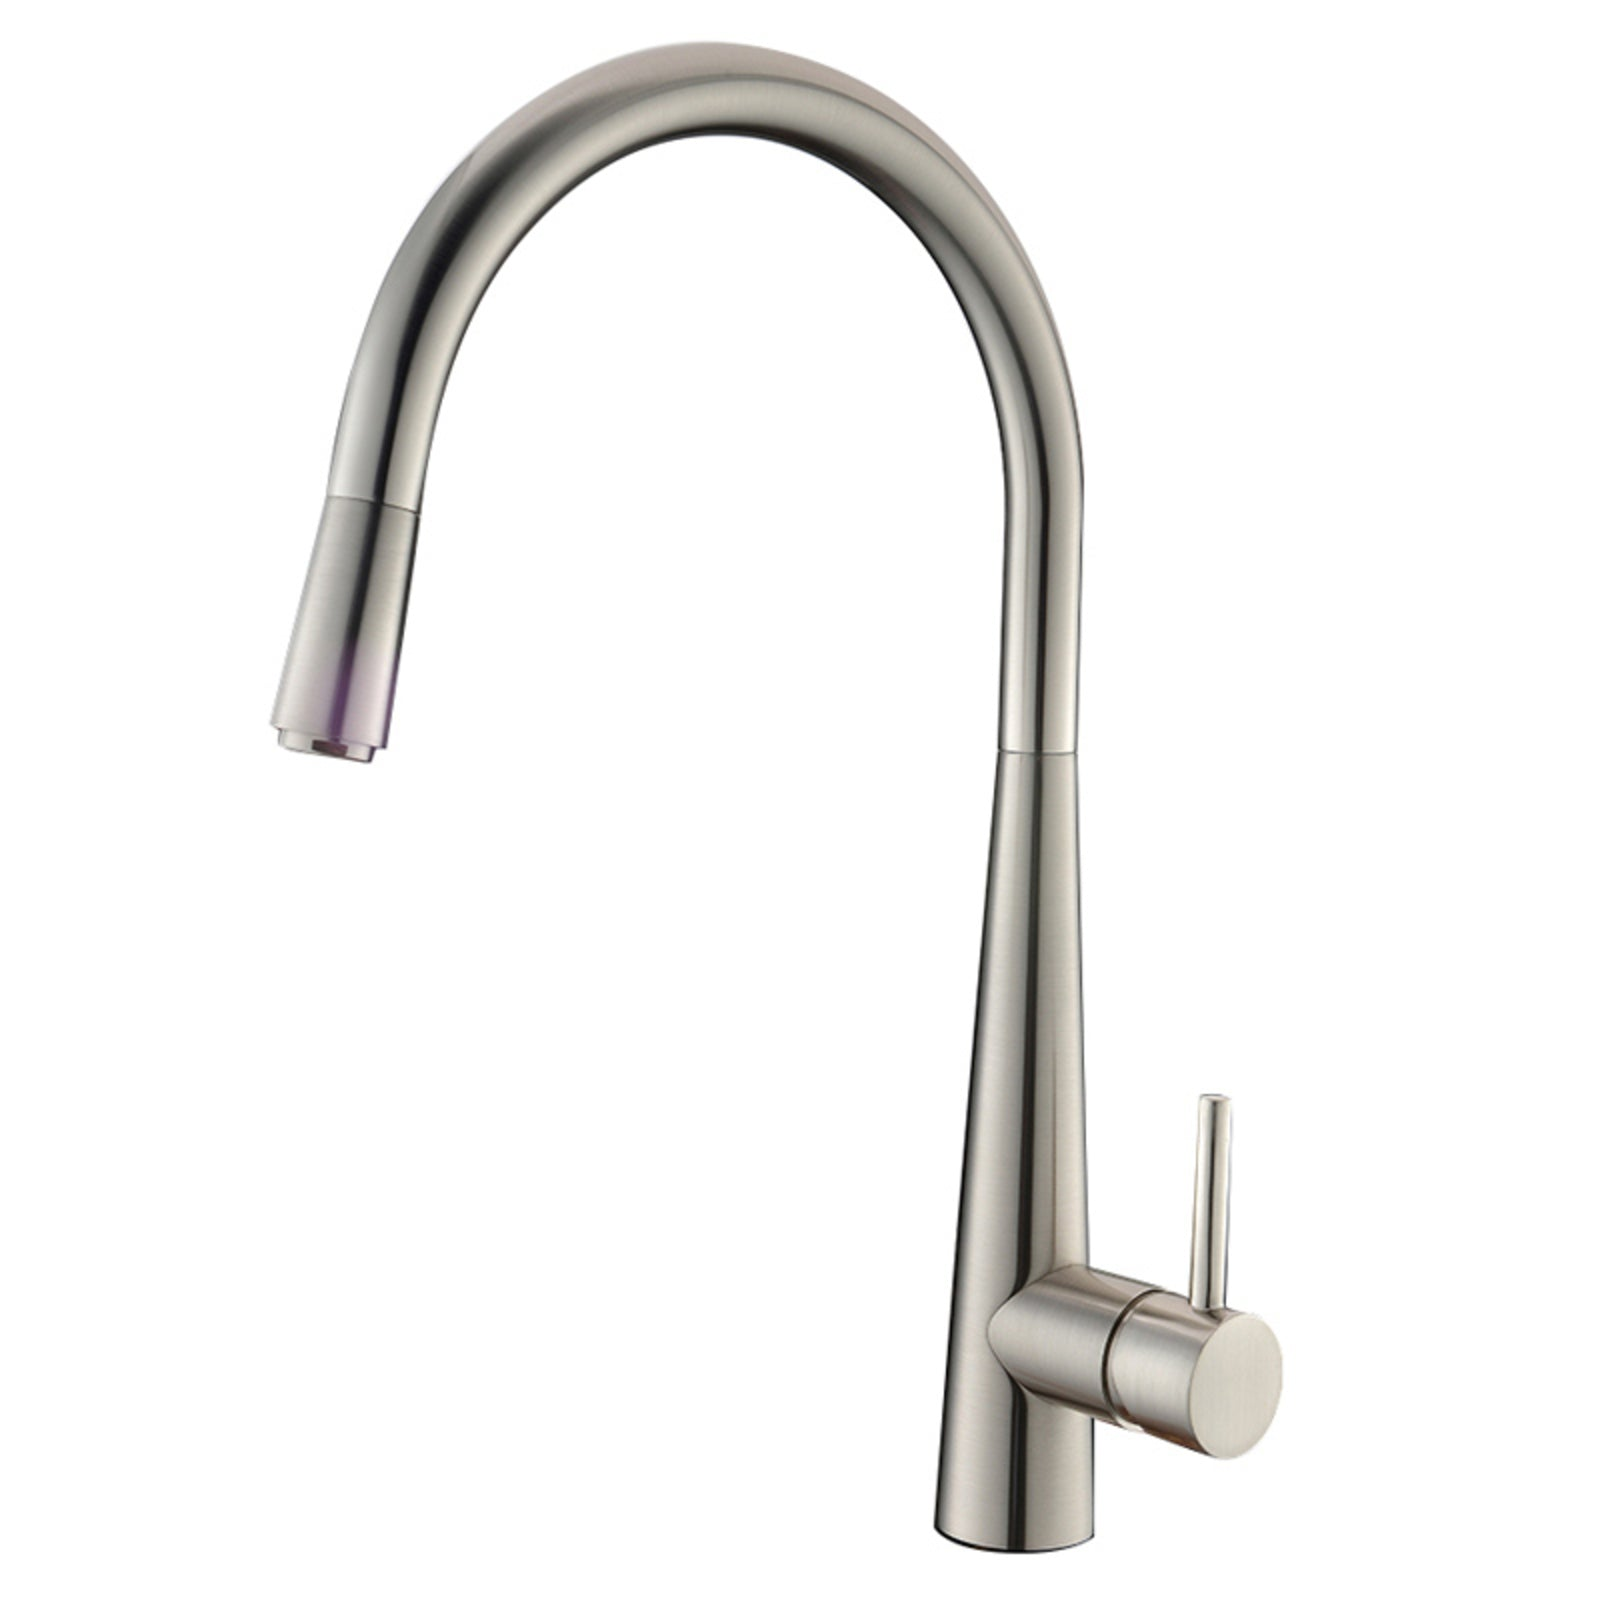 Pentro Brushed Nickle Pull Out Kitchen Mixer